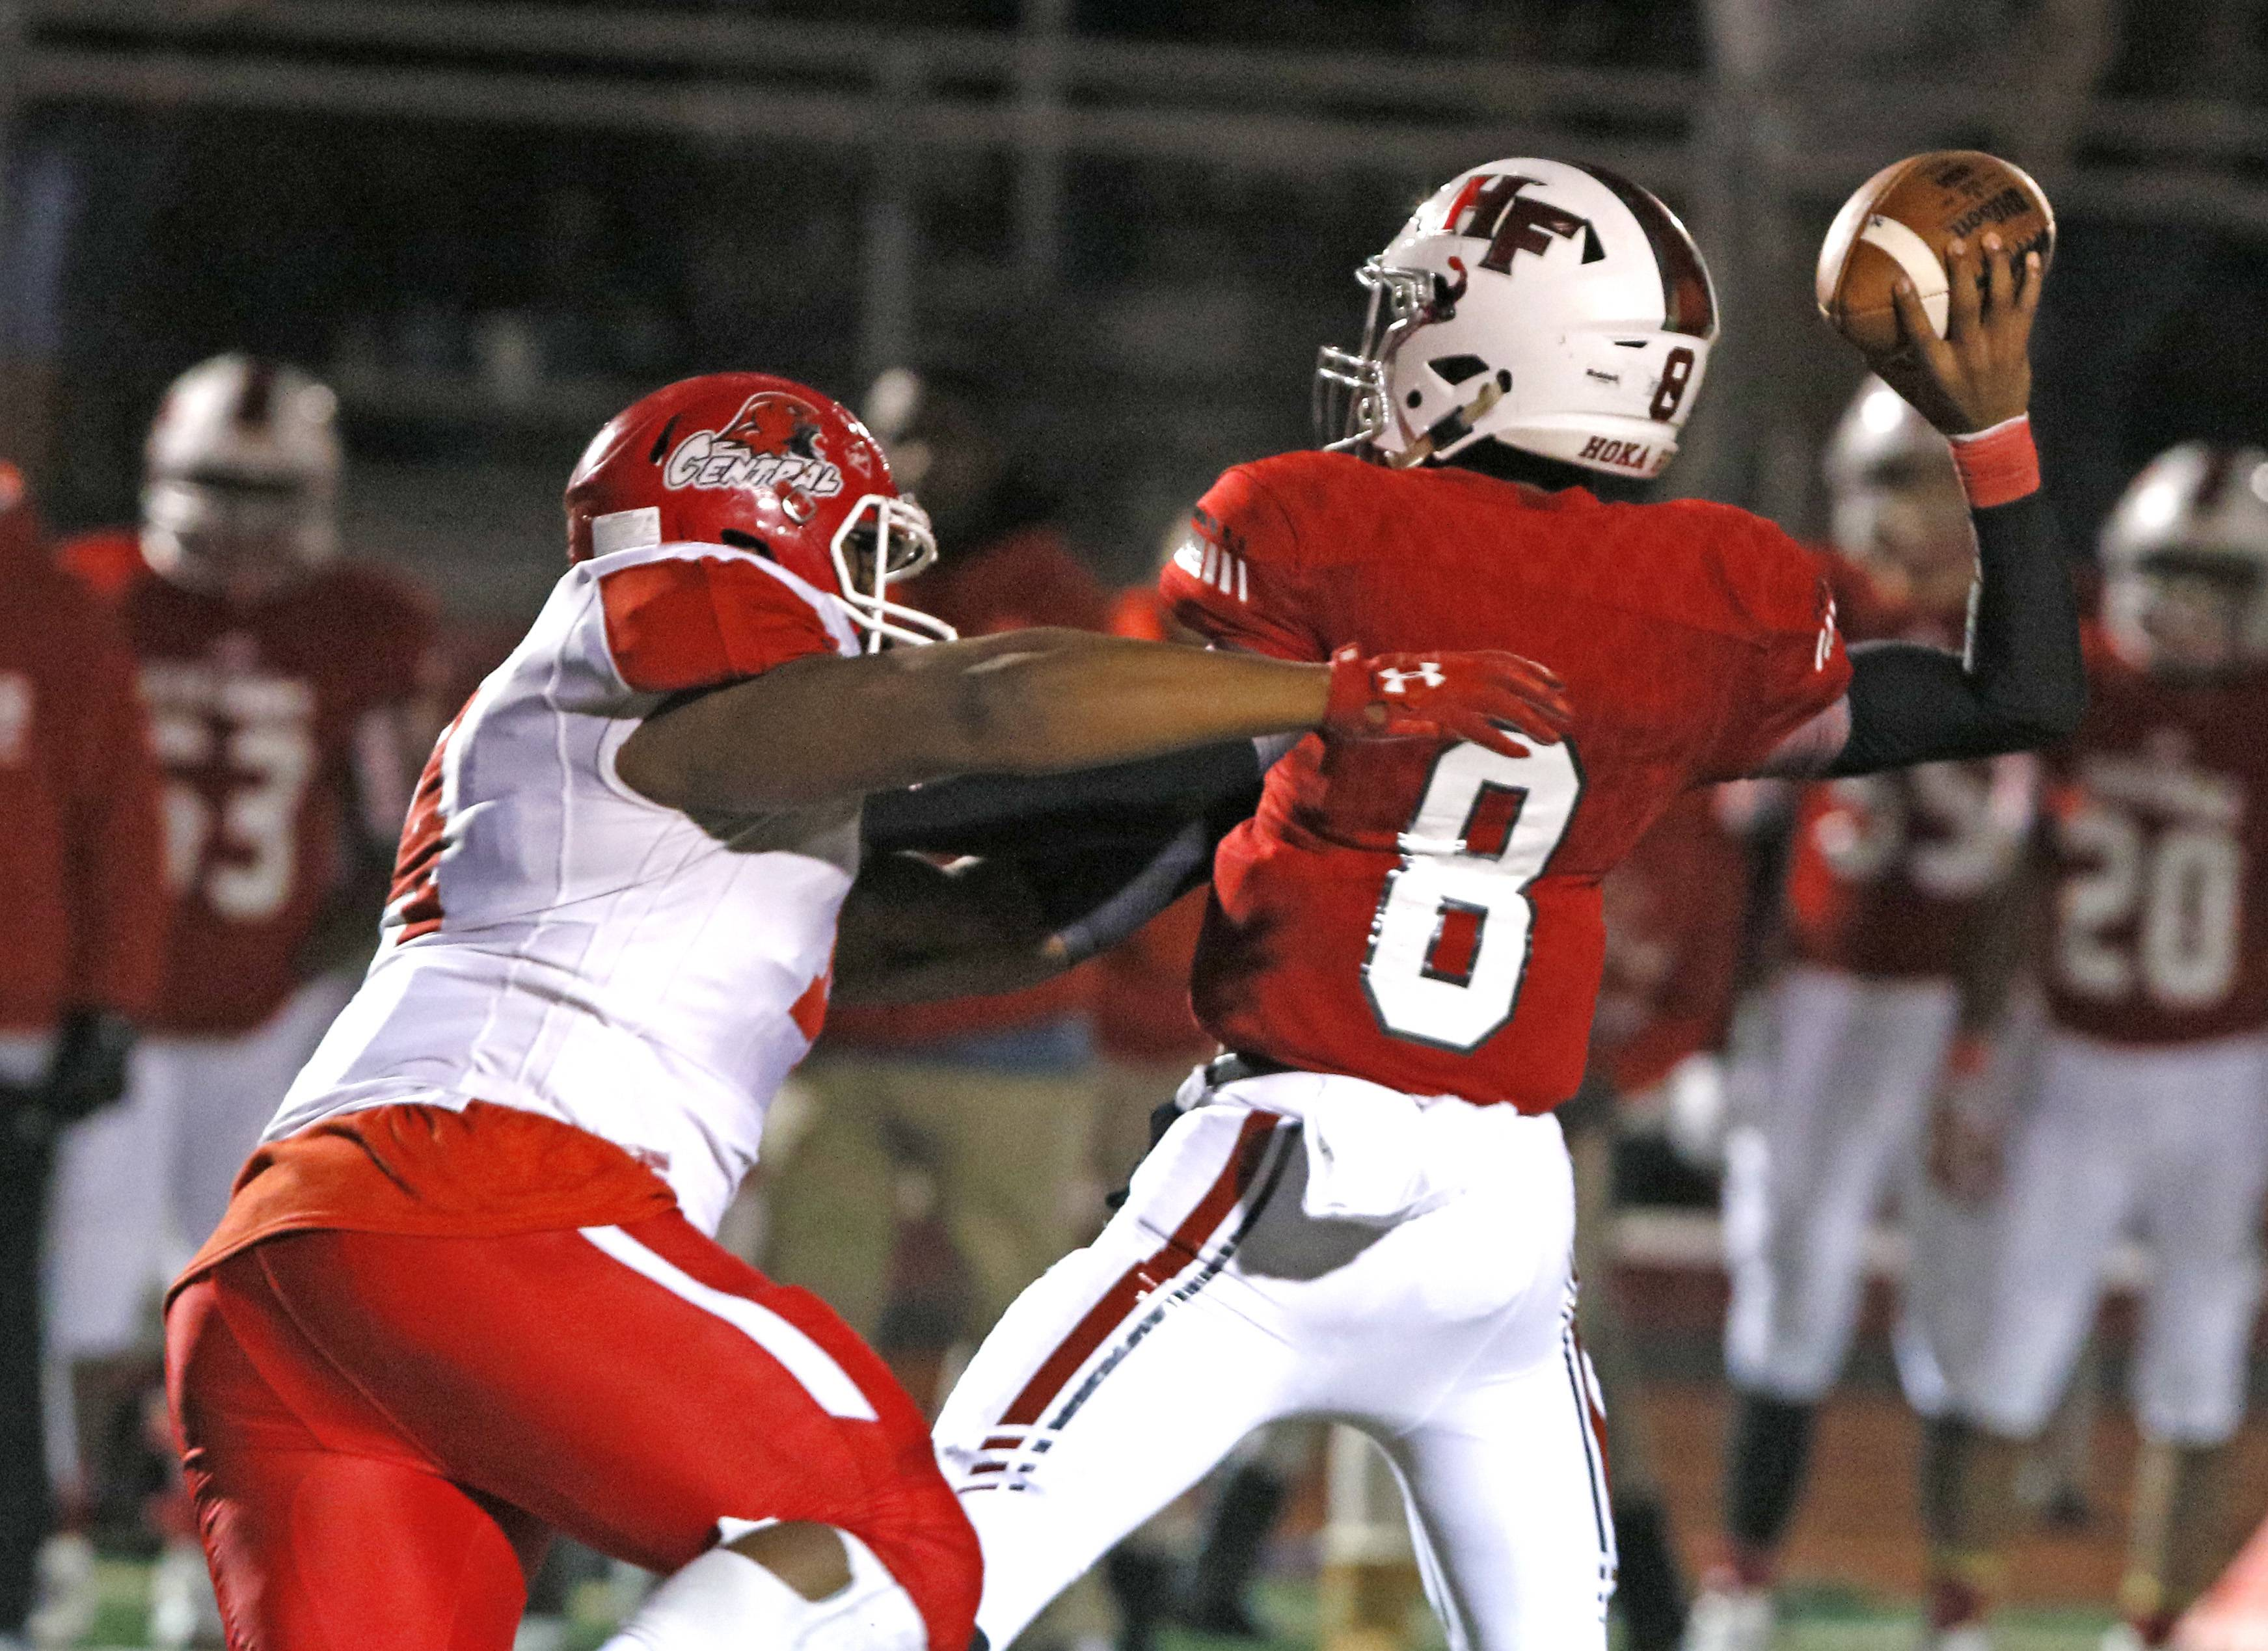 Naperville Central's Lavar Archibald, left, applies key pressure to Homewood Flossmoor's Dominick Jones (8) who throws an interception in the last minute of the fourth quarter, preserving a 31-28 win in the second round Class 8A football playoffs.